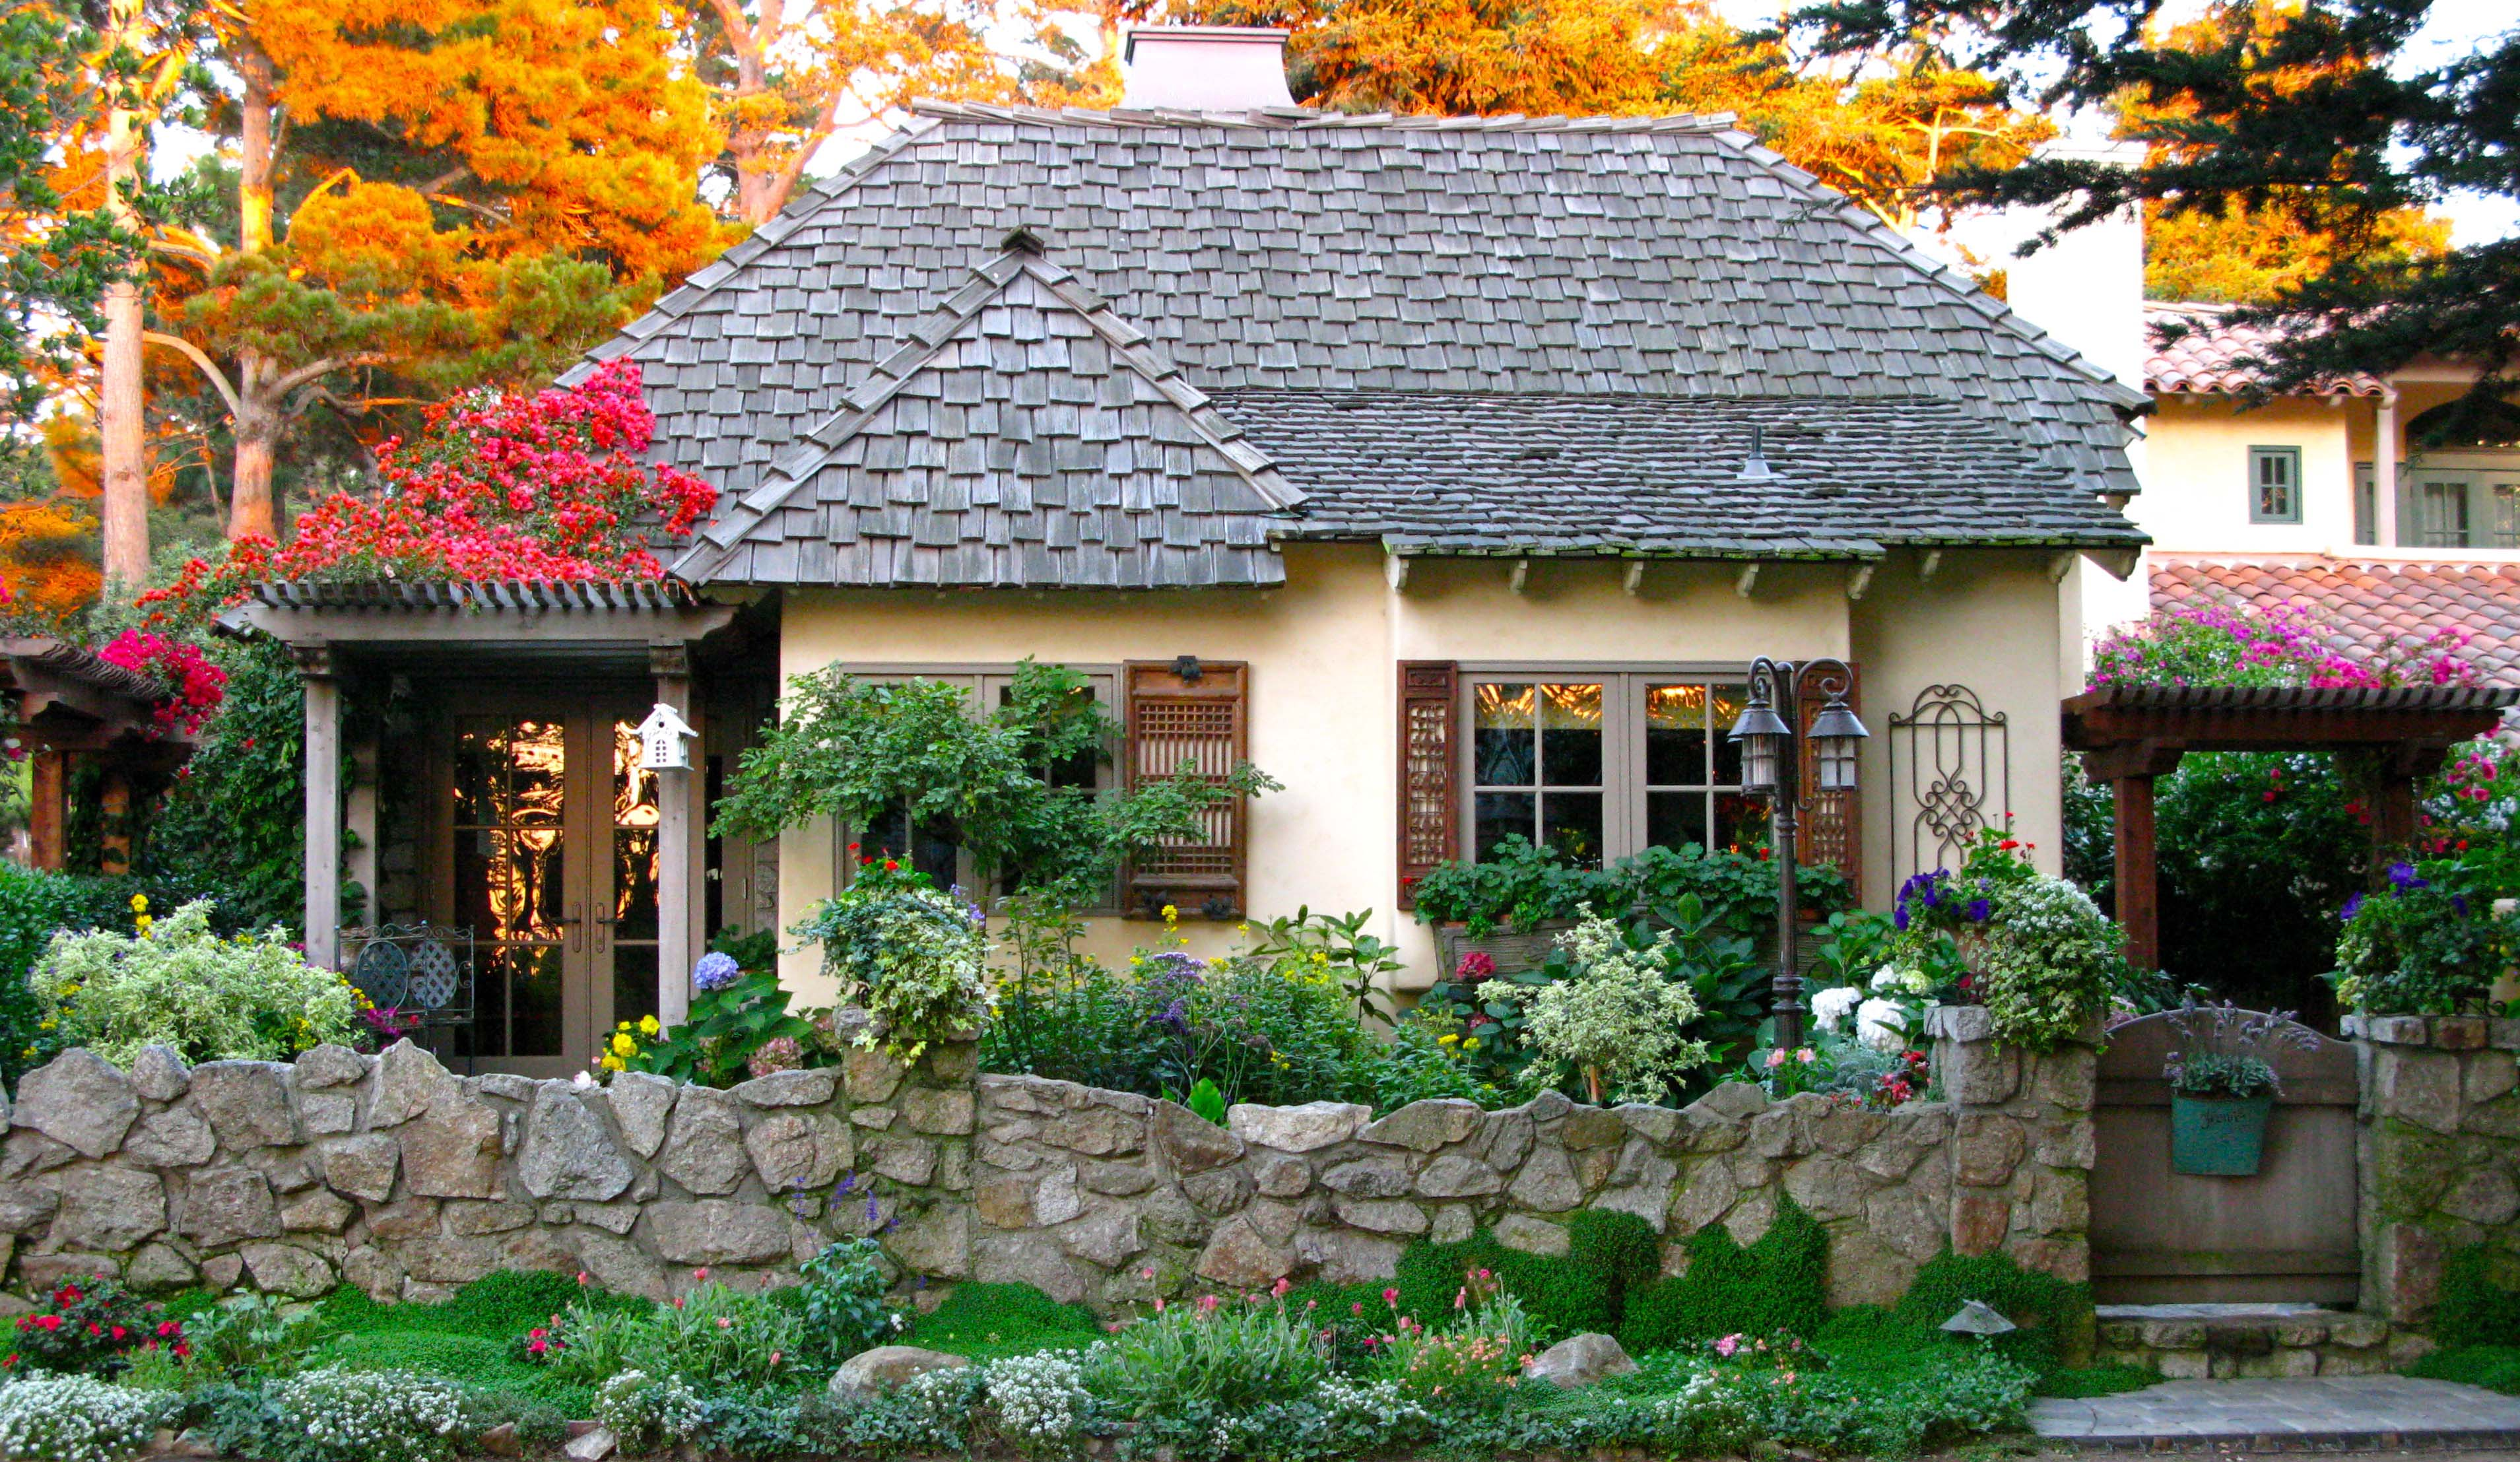 Ocean S End A Quintessential Carmel Cottage Once Upon